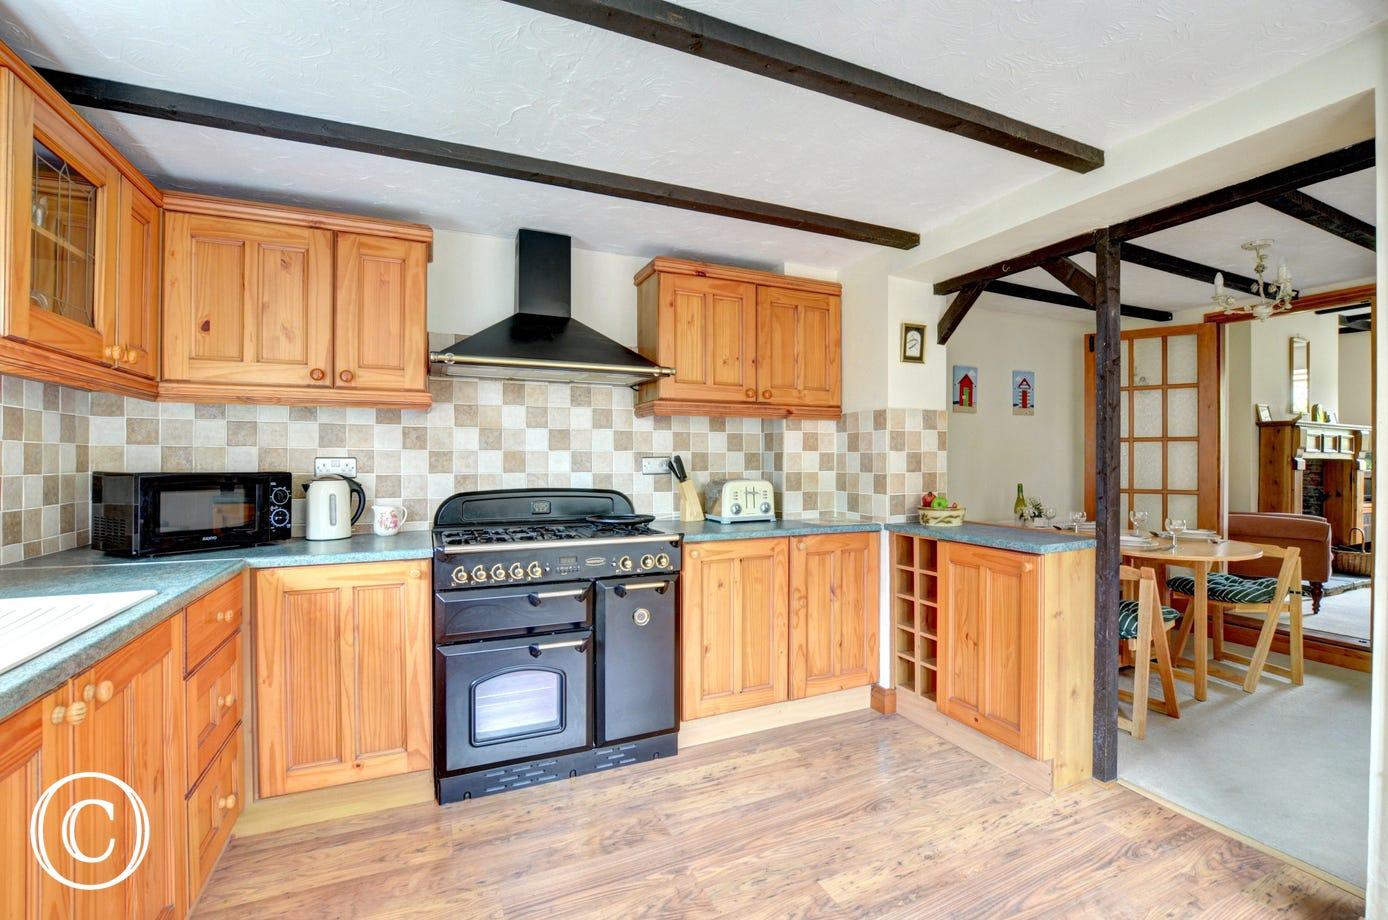 Spacious kitchen with a Rangemaster cooker and other major appliances